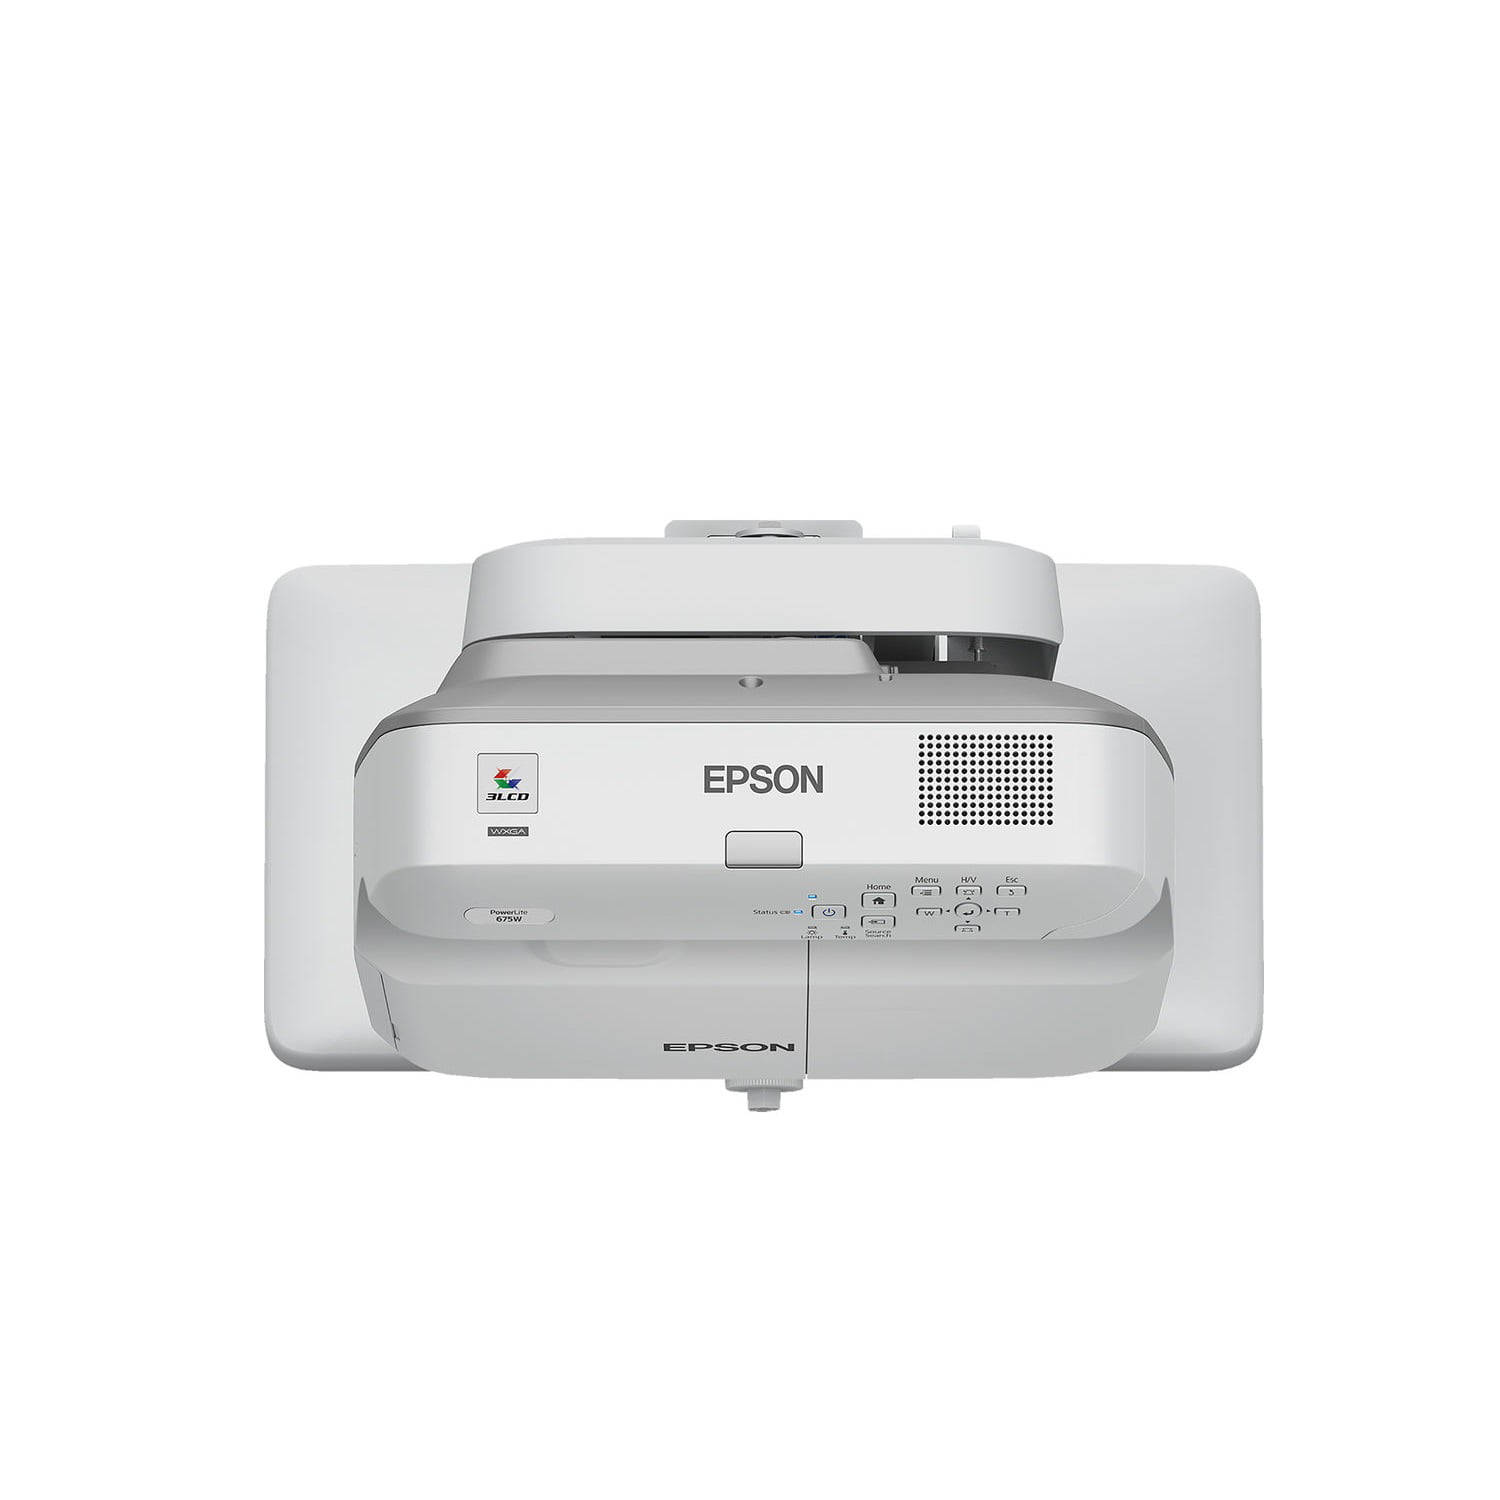 Epson PowerLite 675W 3200 Lumen Ultra-Short Throw 3LCD Projector by Epson